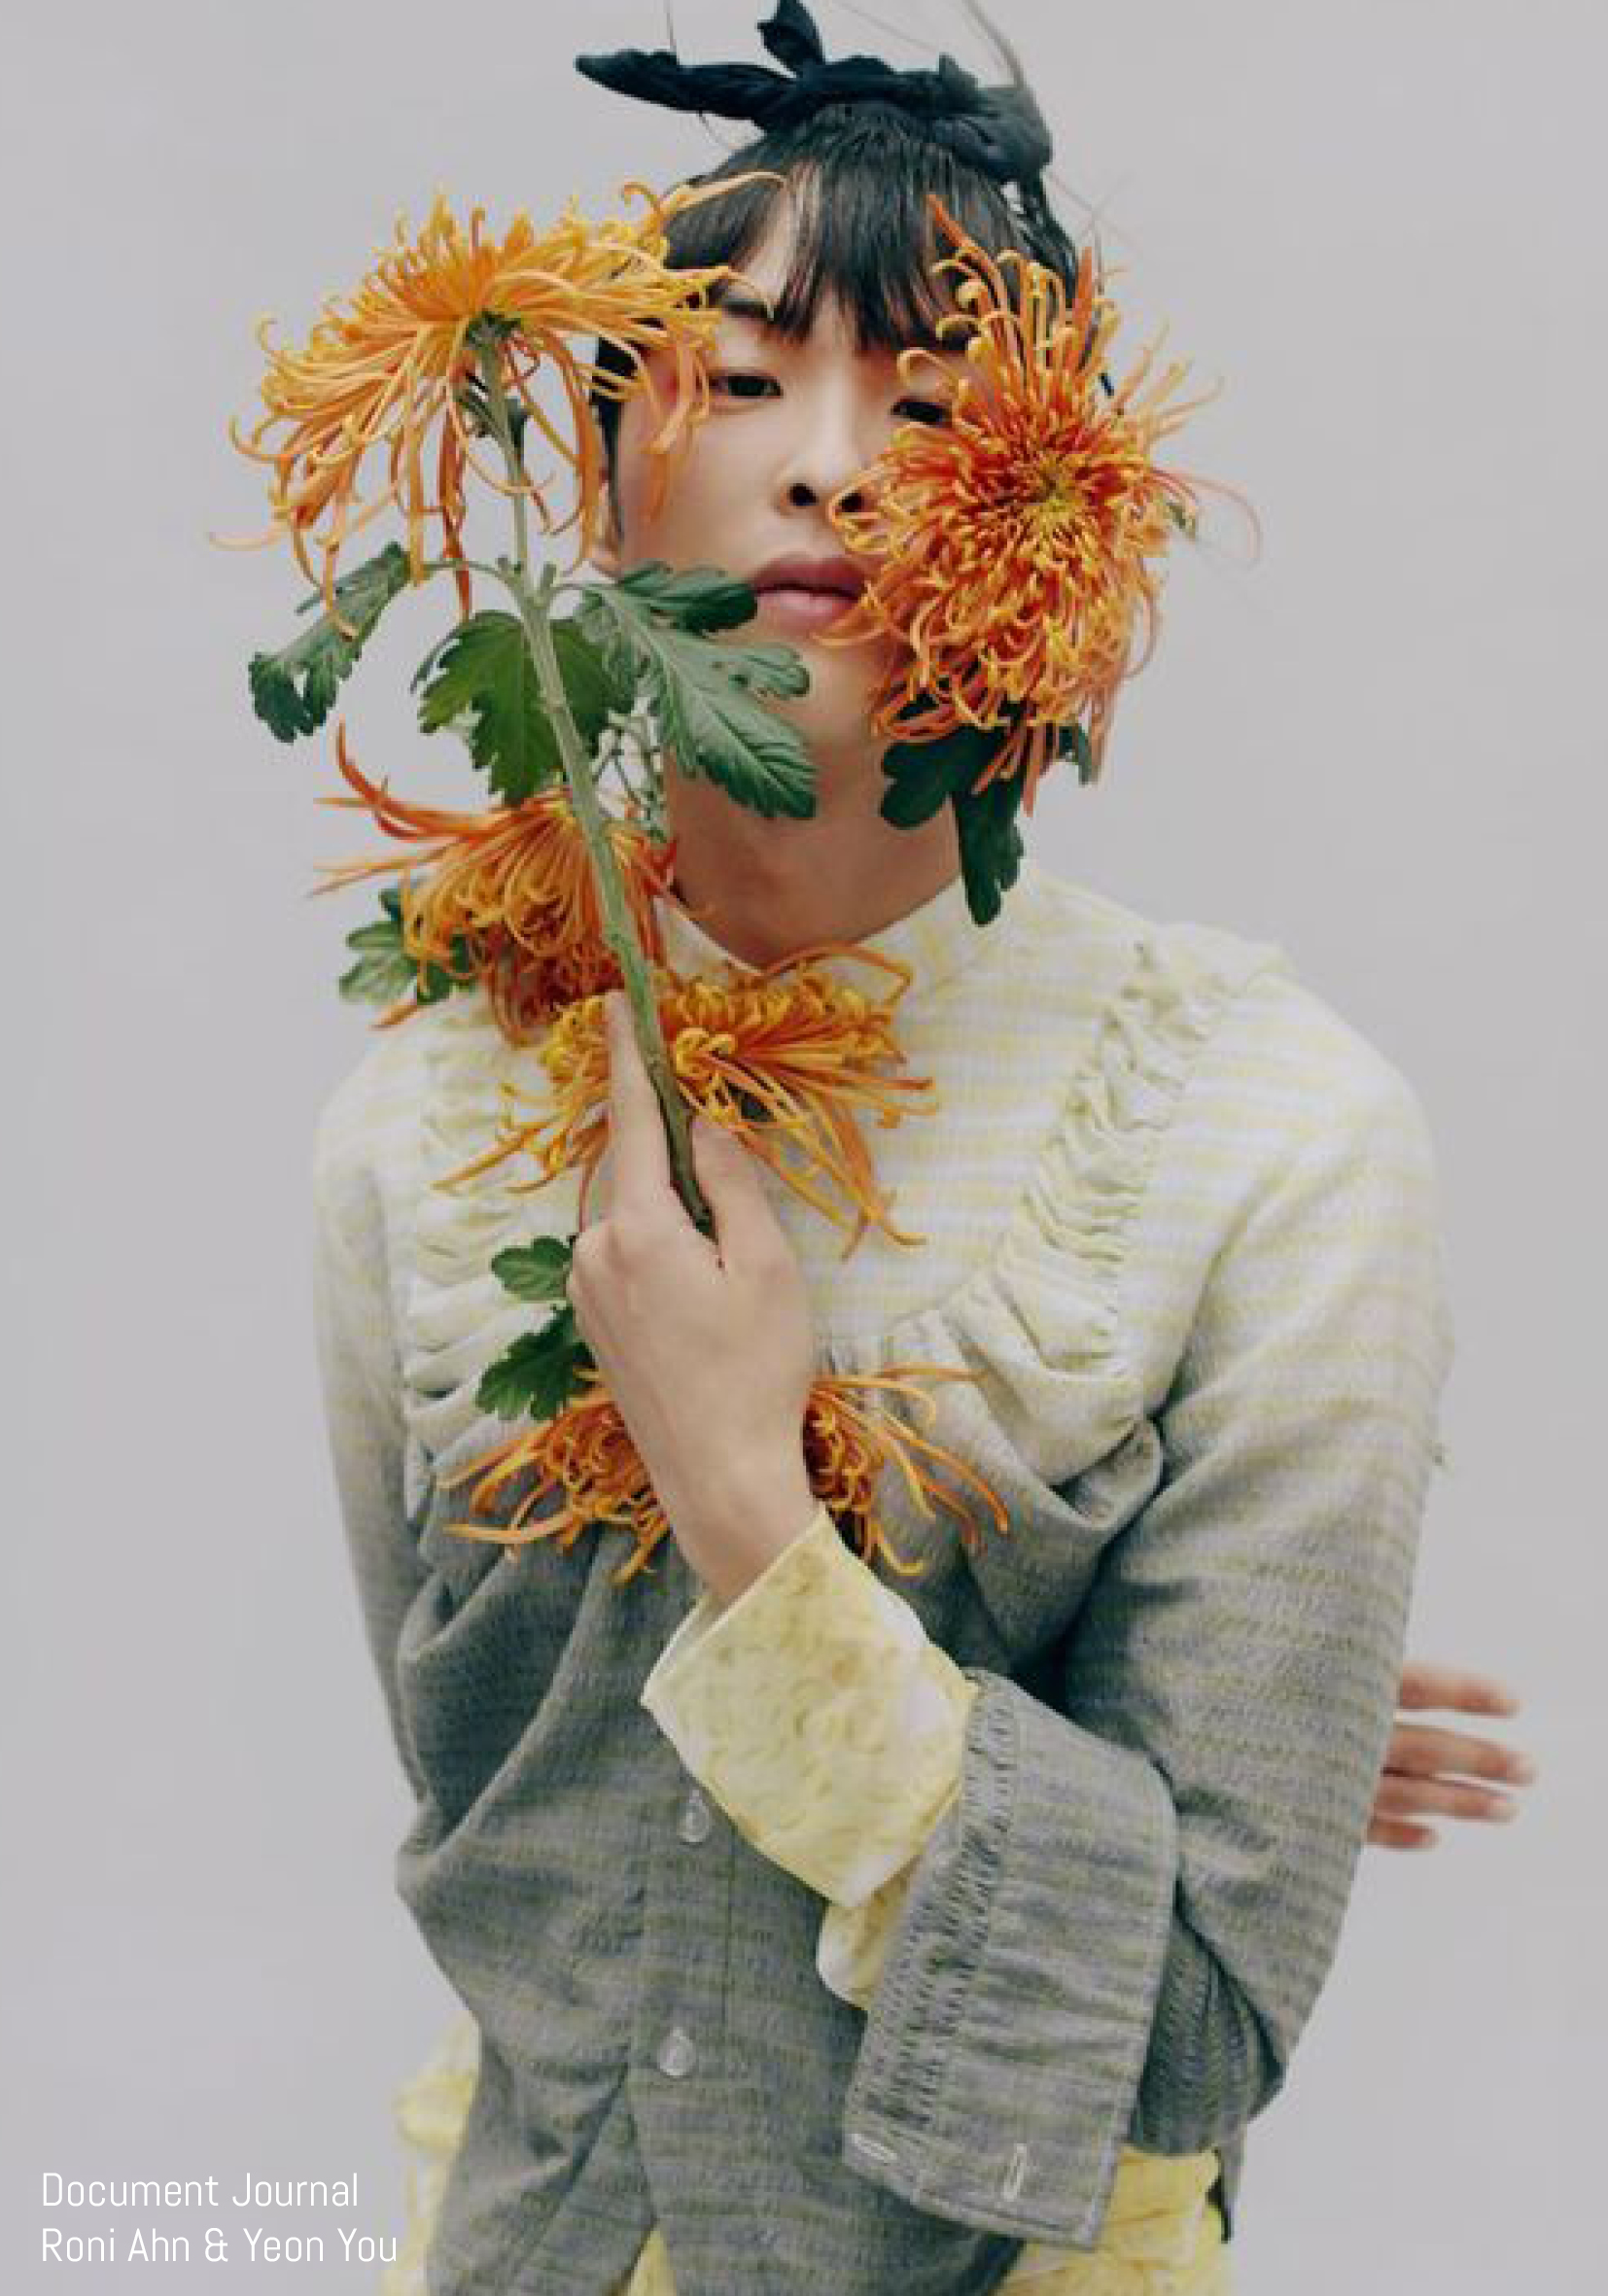 Model poses with flower bouquet for Document Journal Roni Ahn & Yeon You